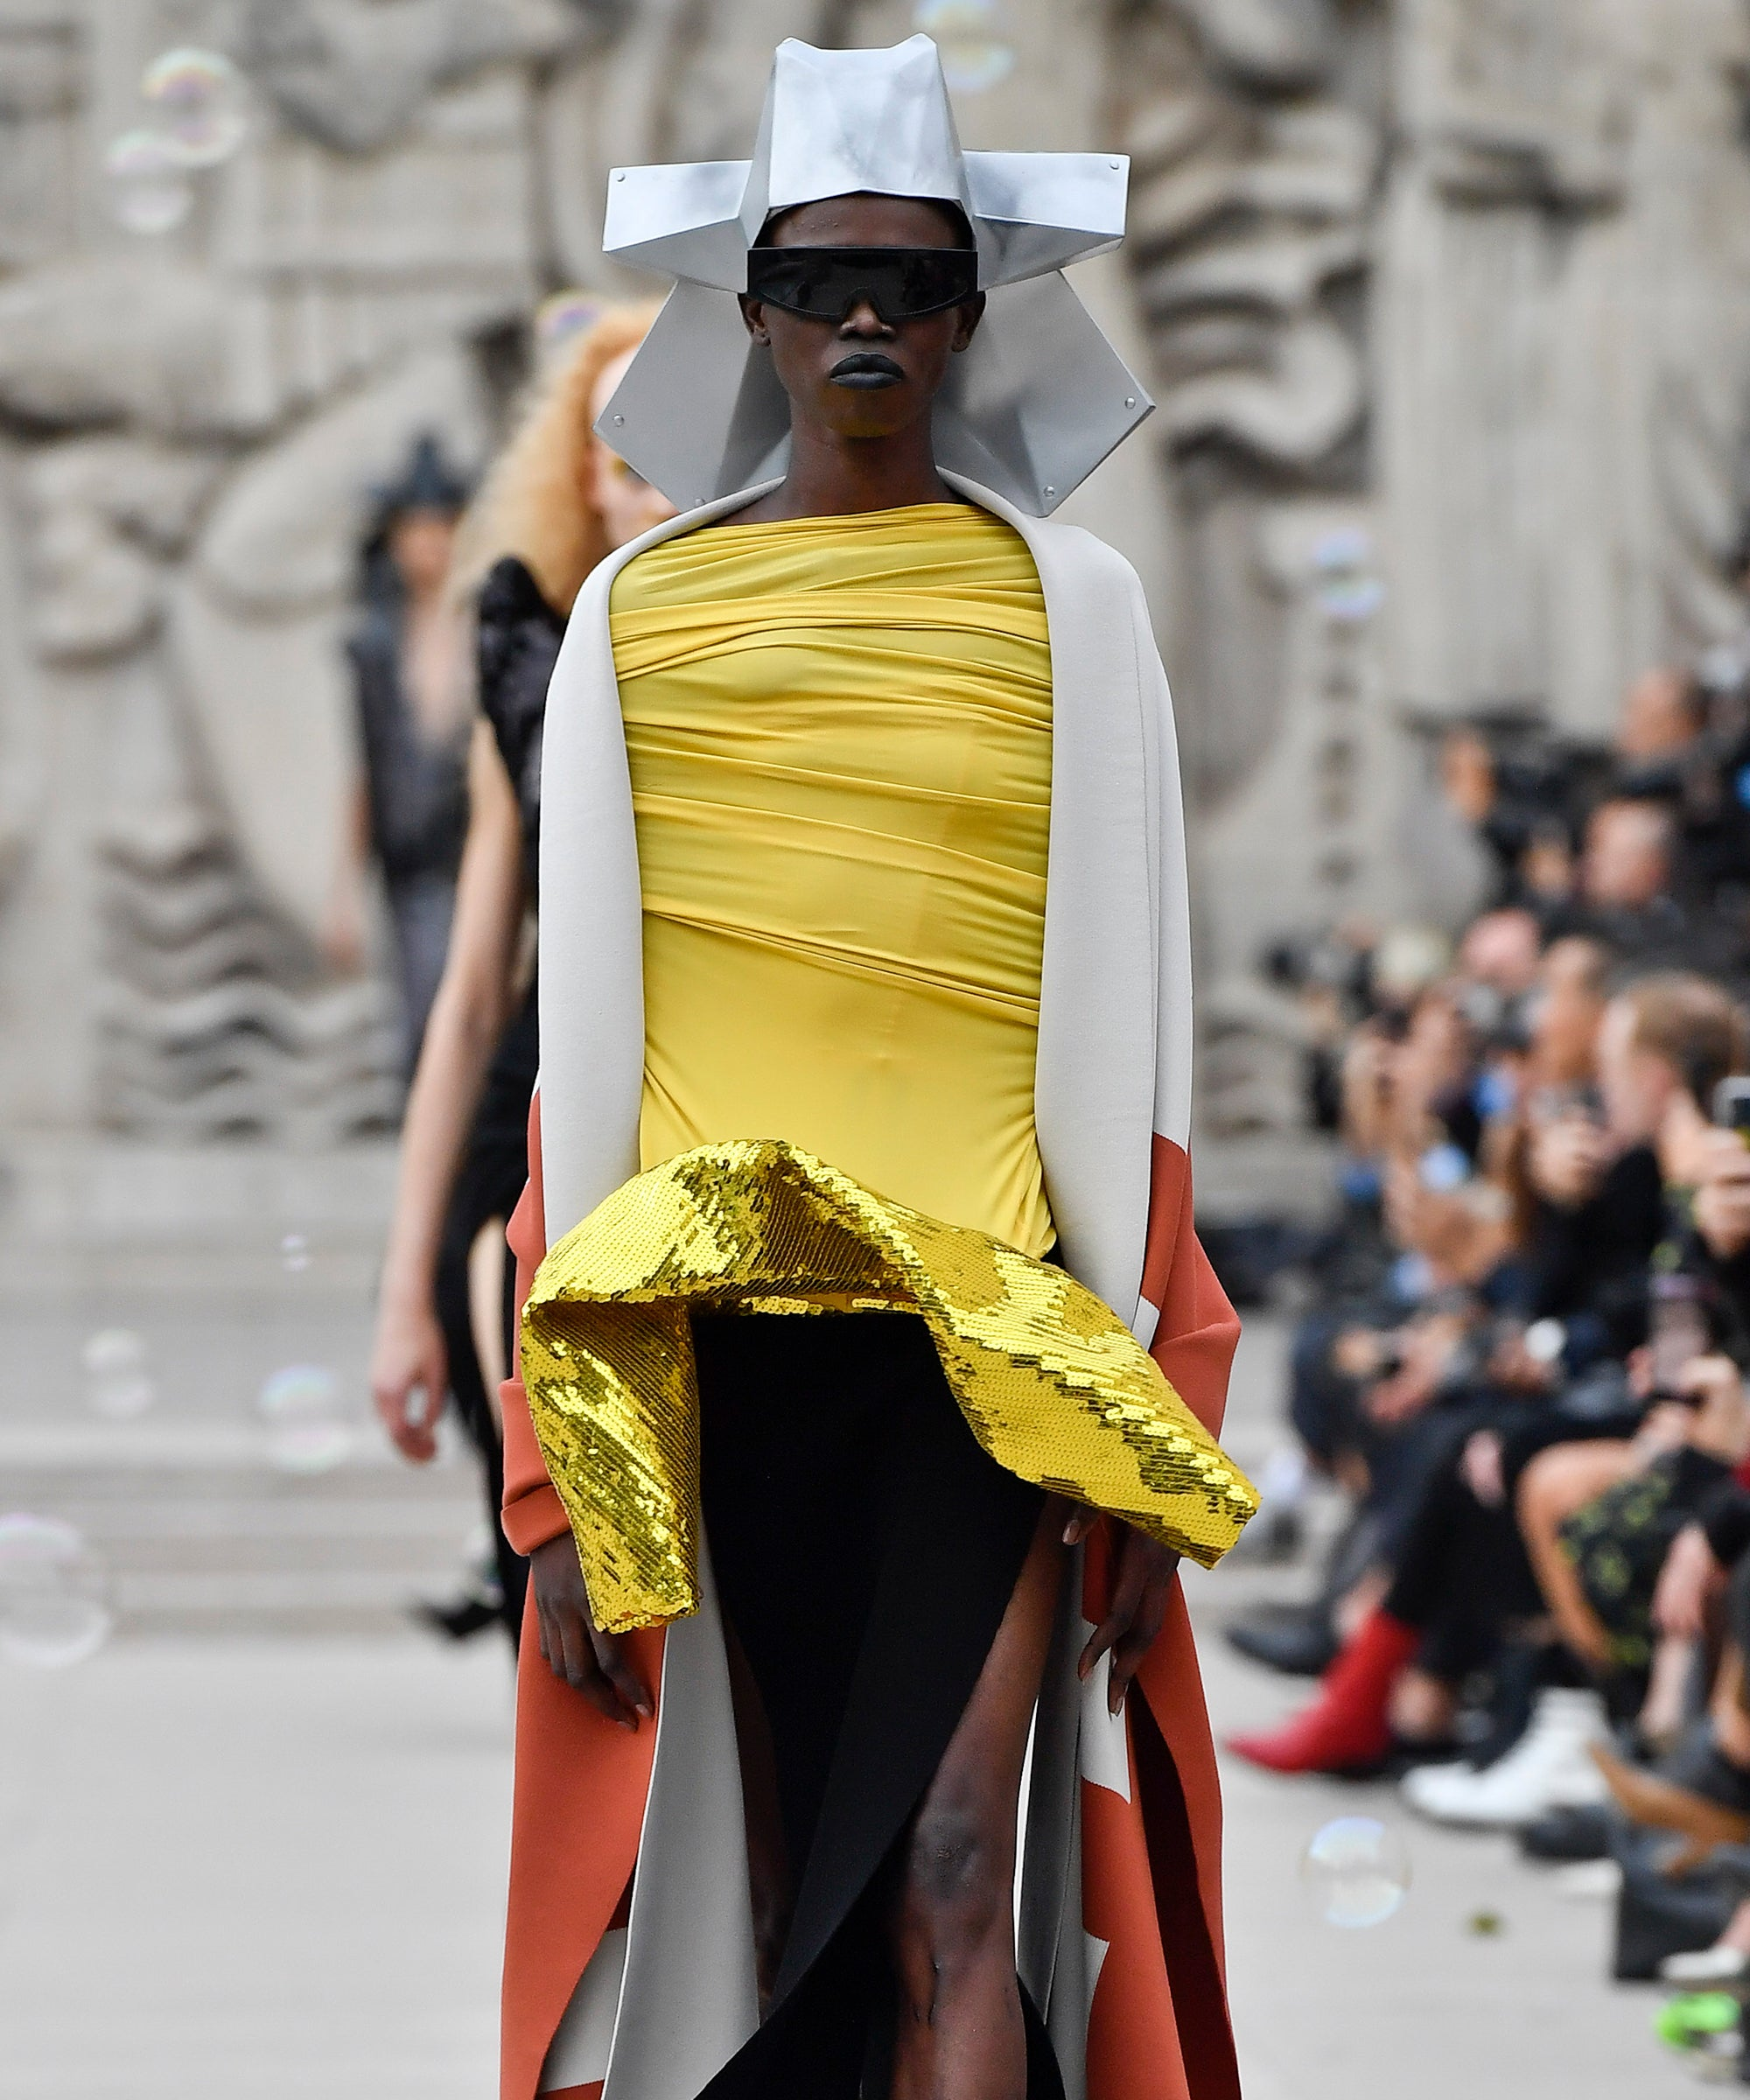 Rick Owens' Family In Mexico Inspired The Pageantry In His Latest Collection